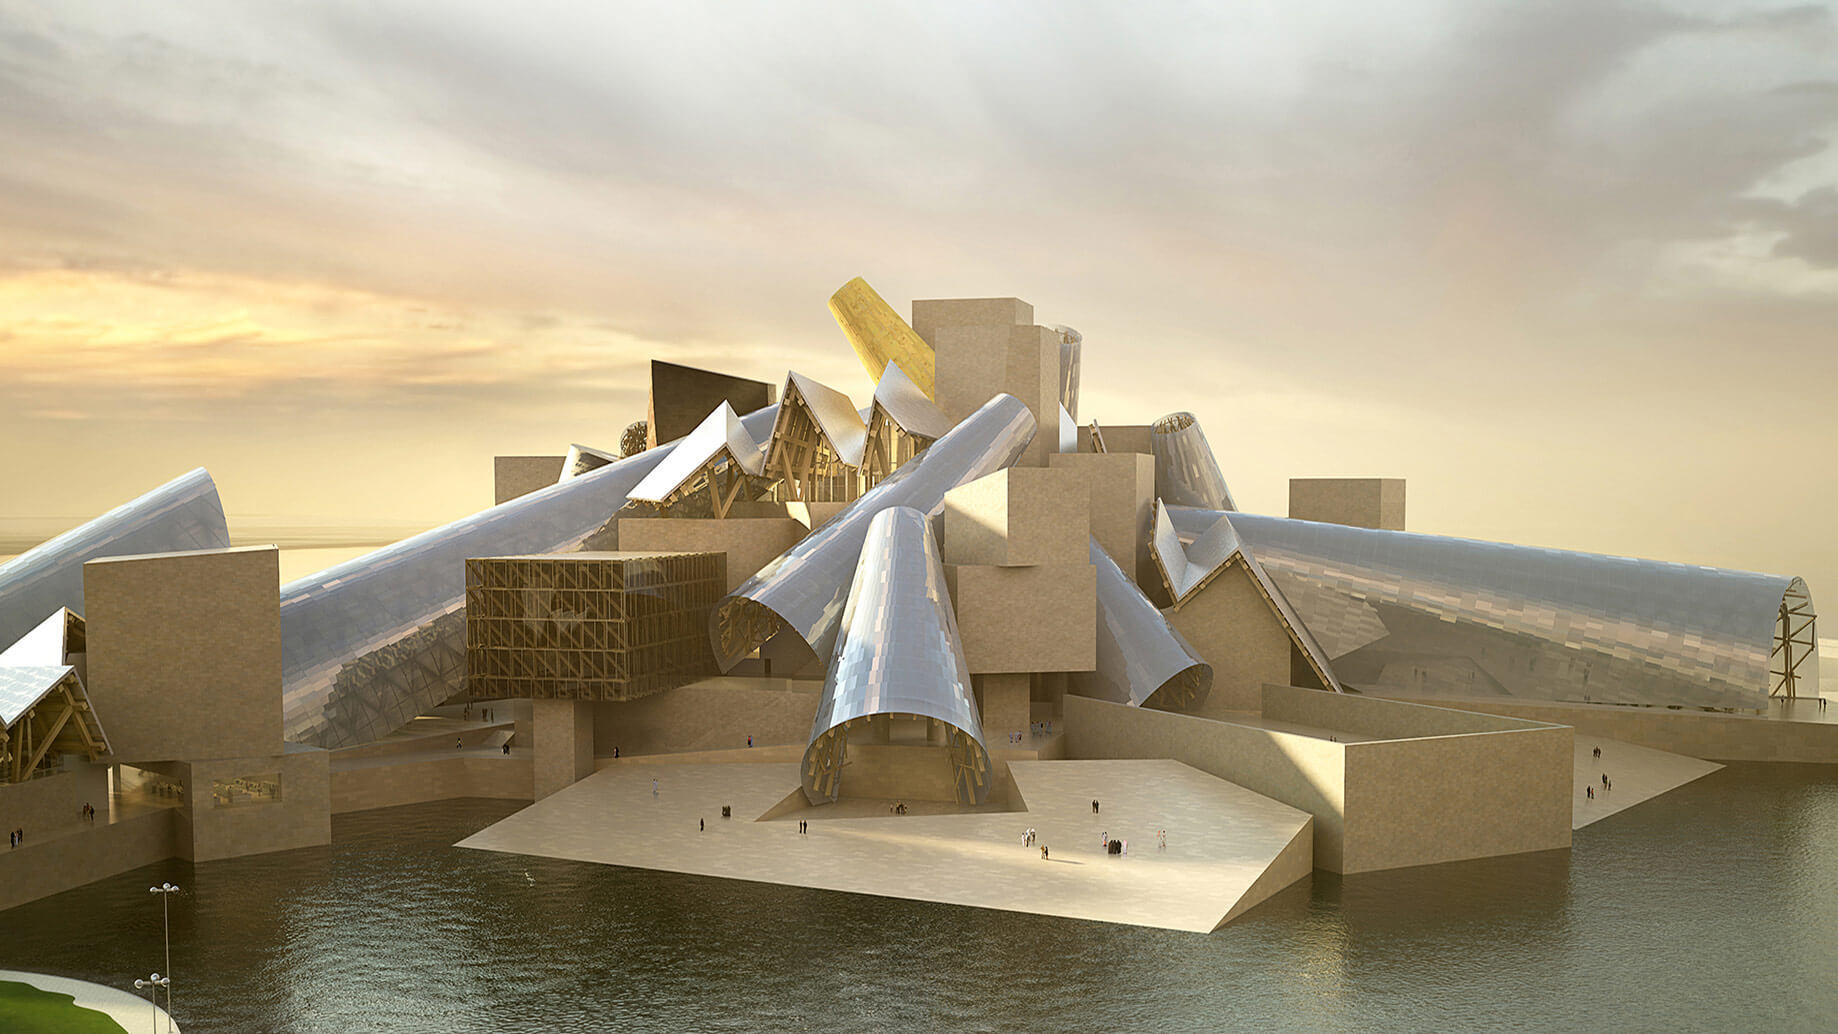 The Long-delayed Guggenheim Abu Dhabi Will Open in 2026